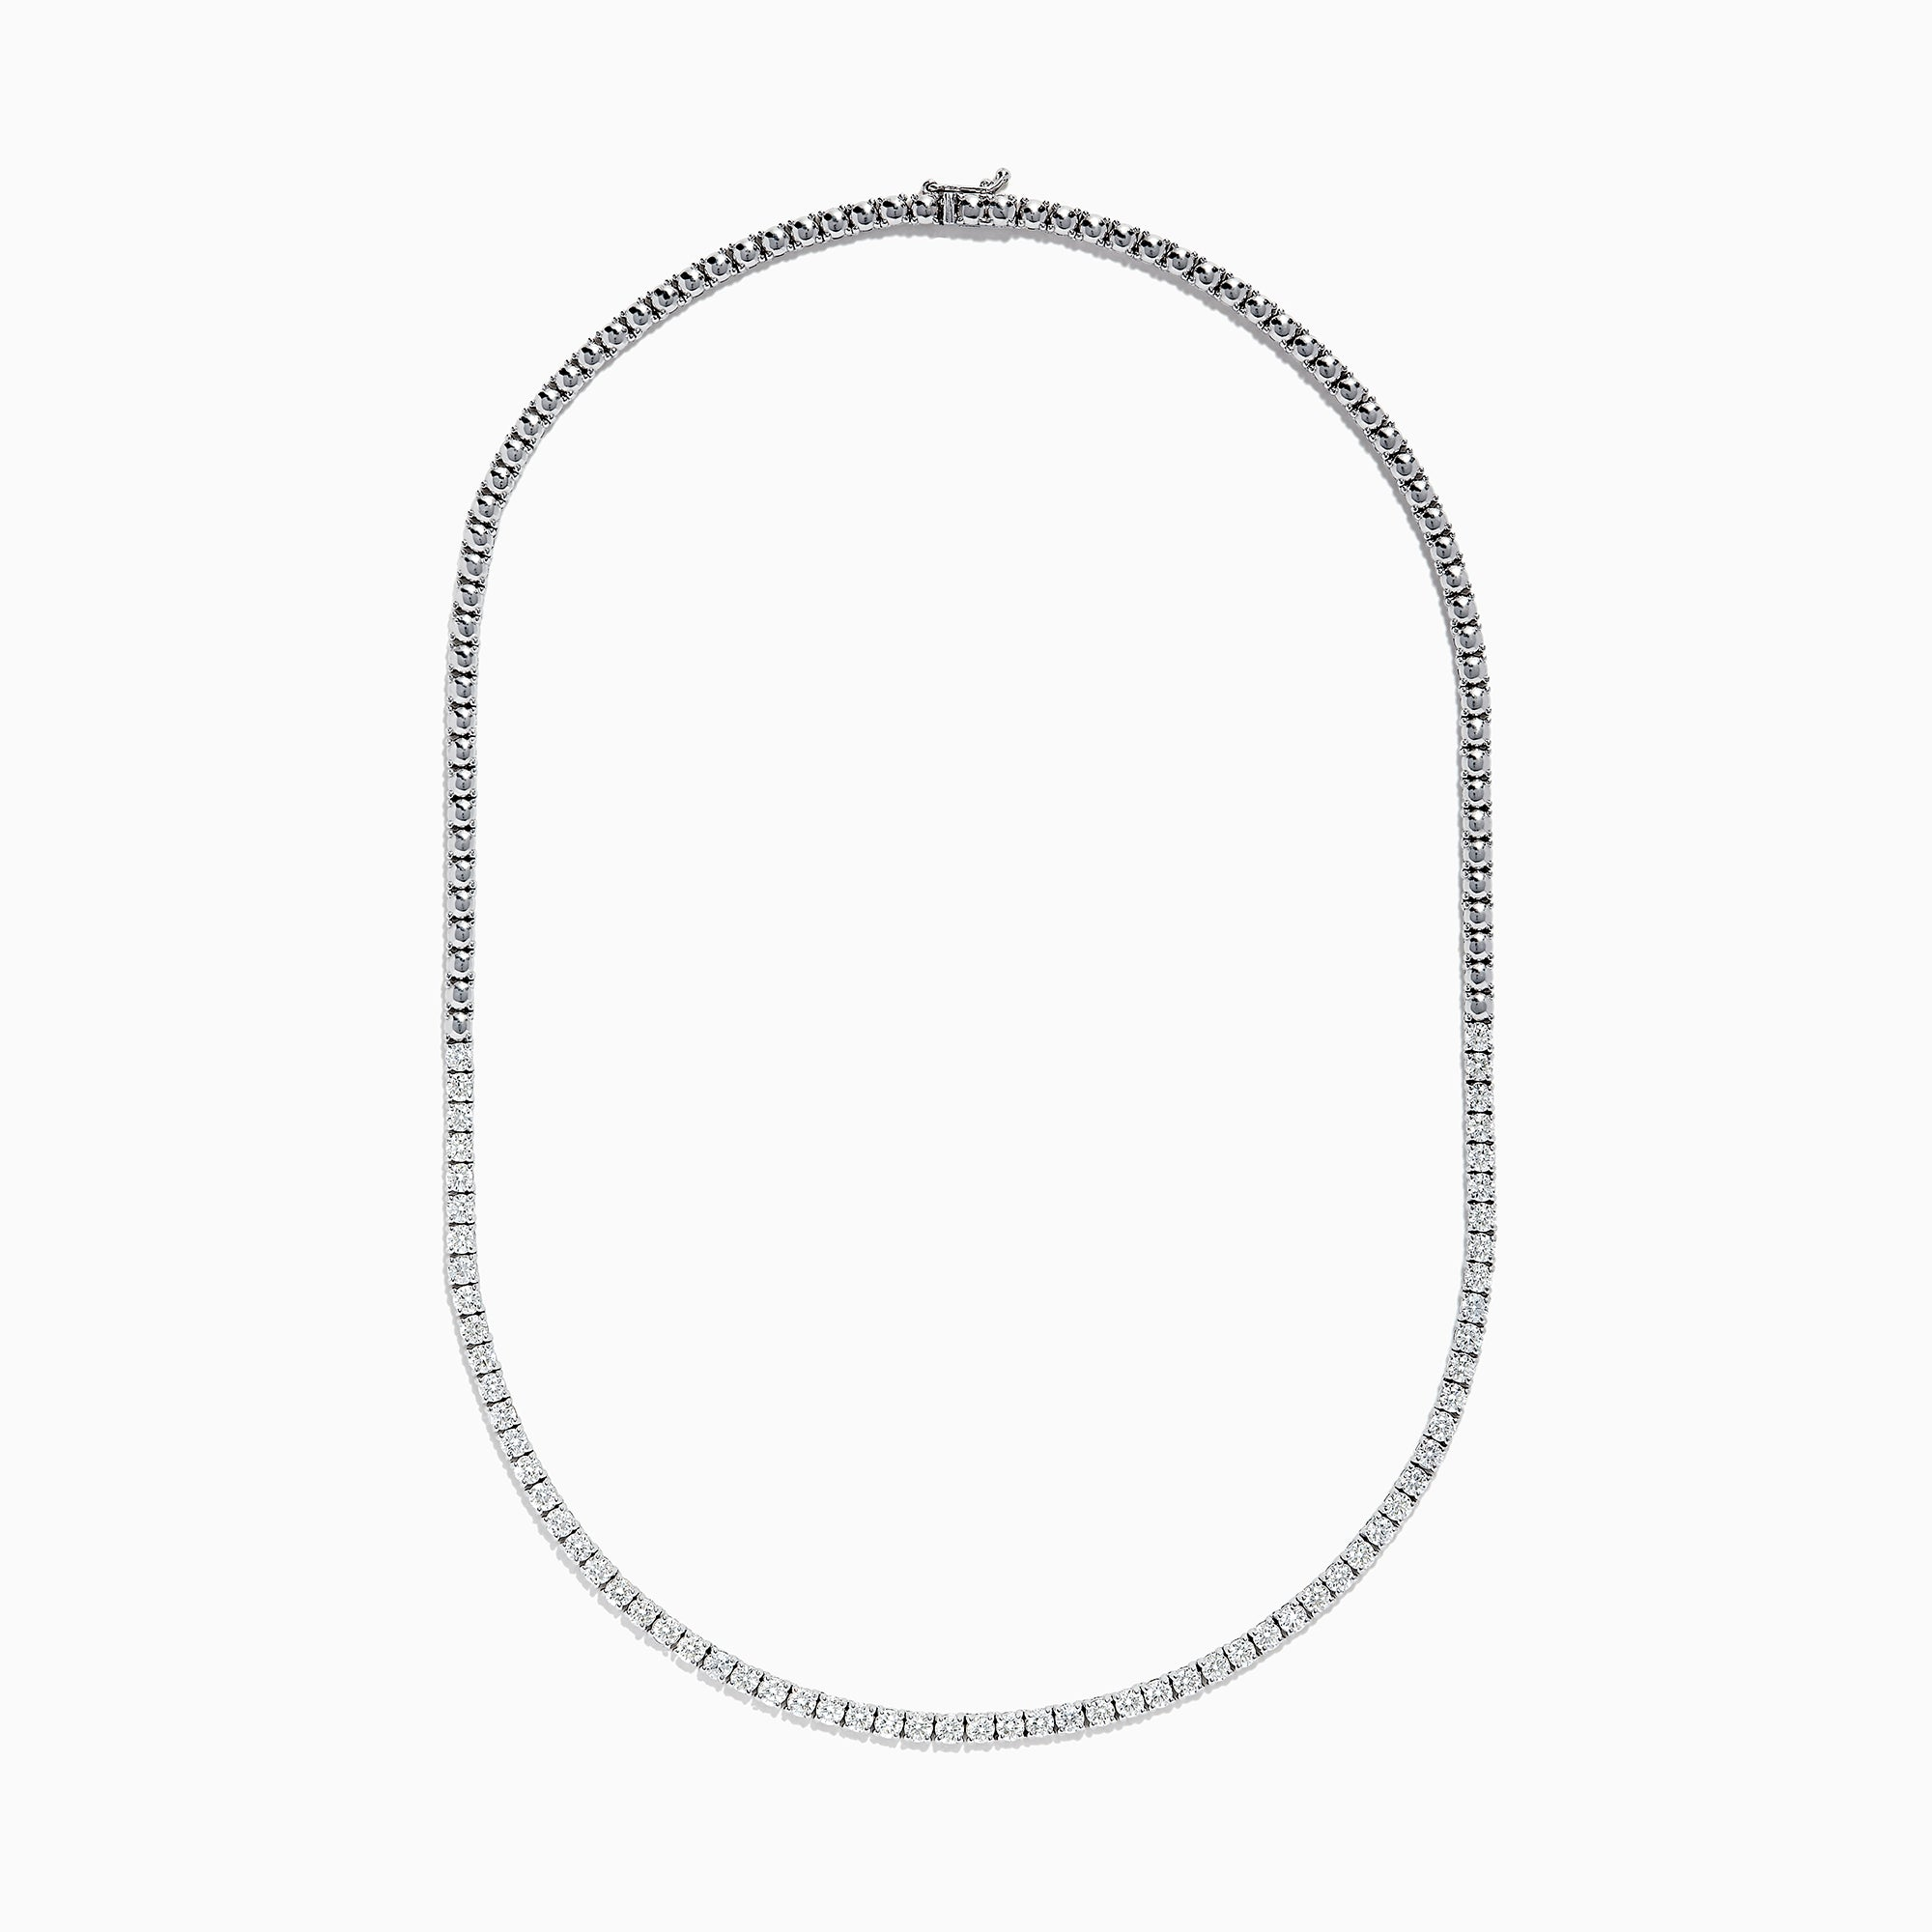 Effy Pave Classica 14K White Gold Diamond Necklace, 5.10 TCW